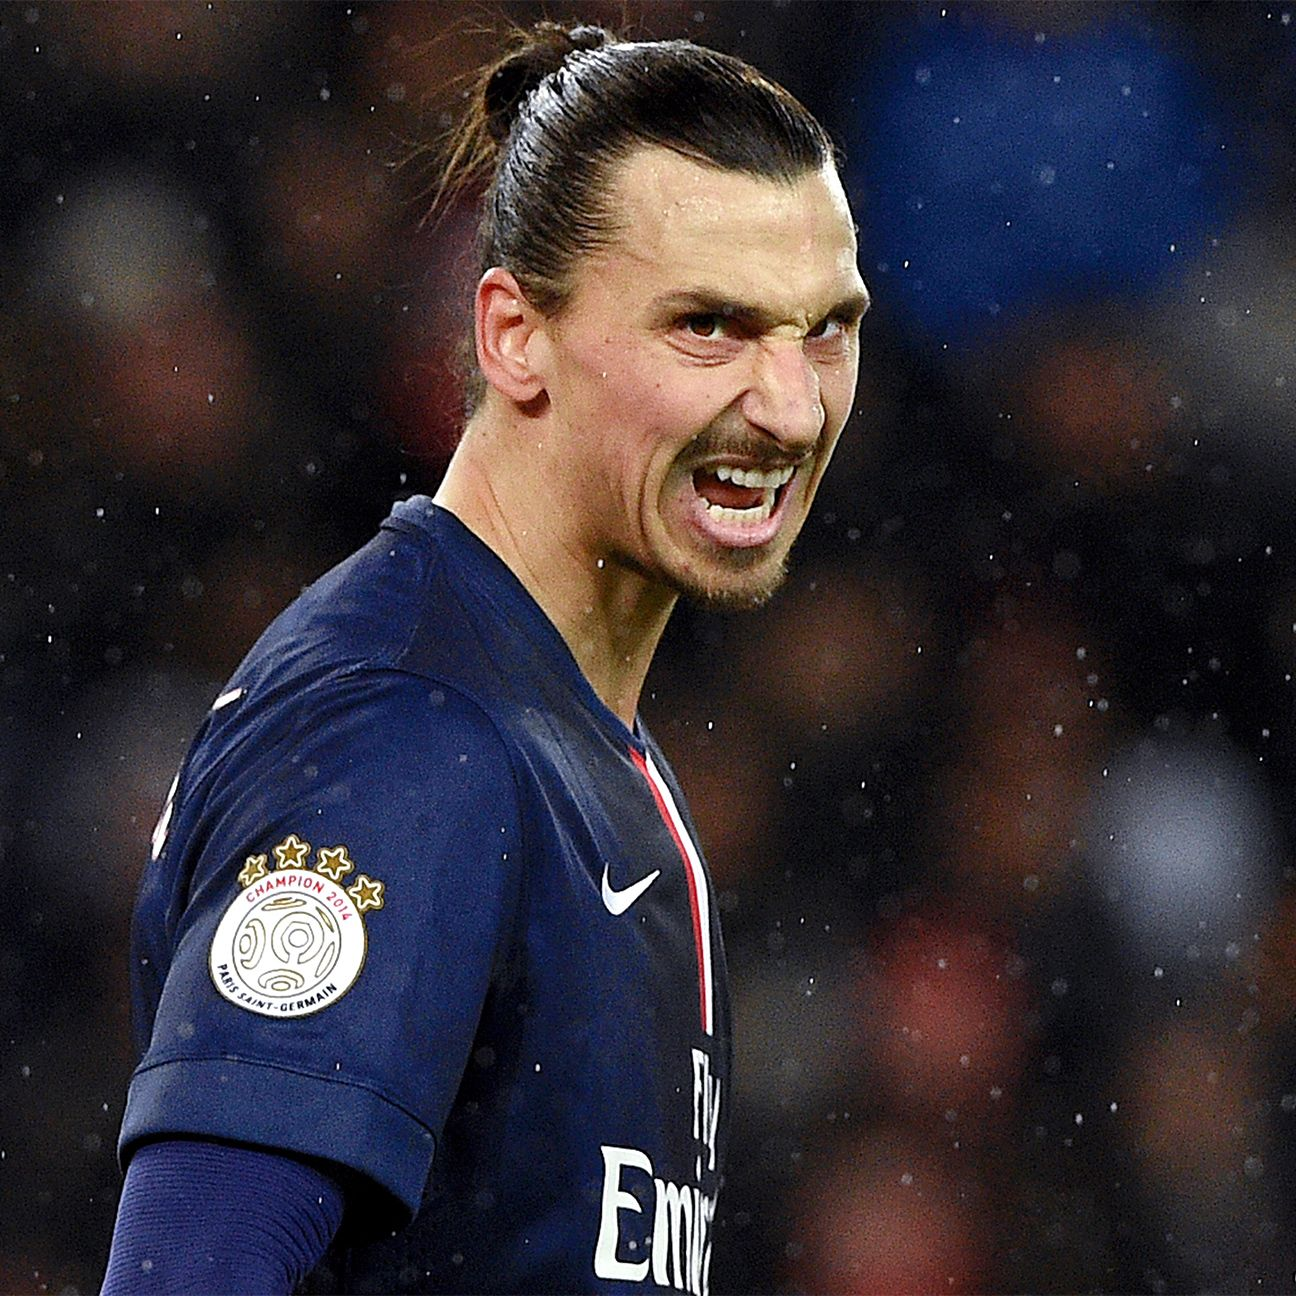 Another spot in the PSG history books awaits Zlatan Ibrahimovic should he score in Sunday's Le Classique.